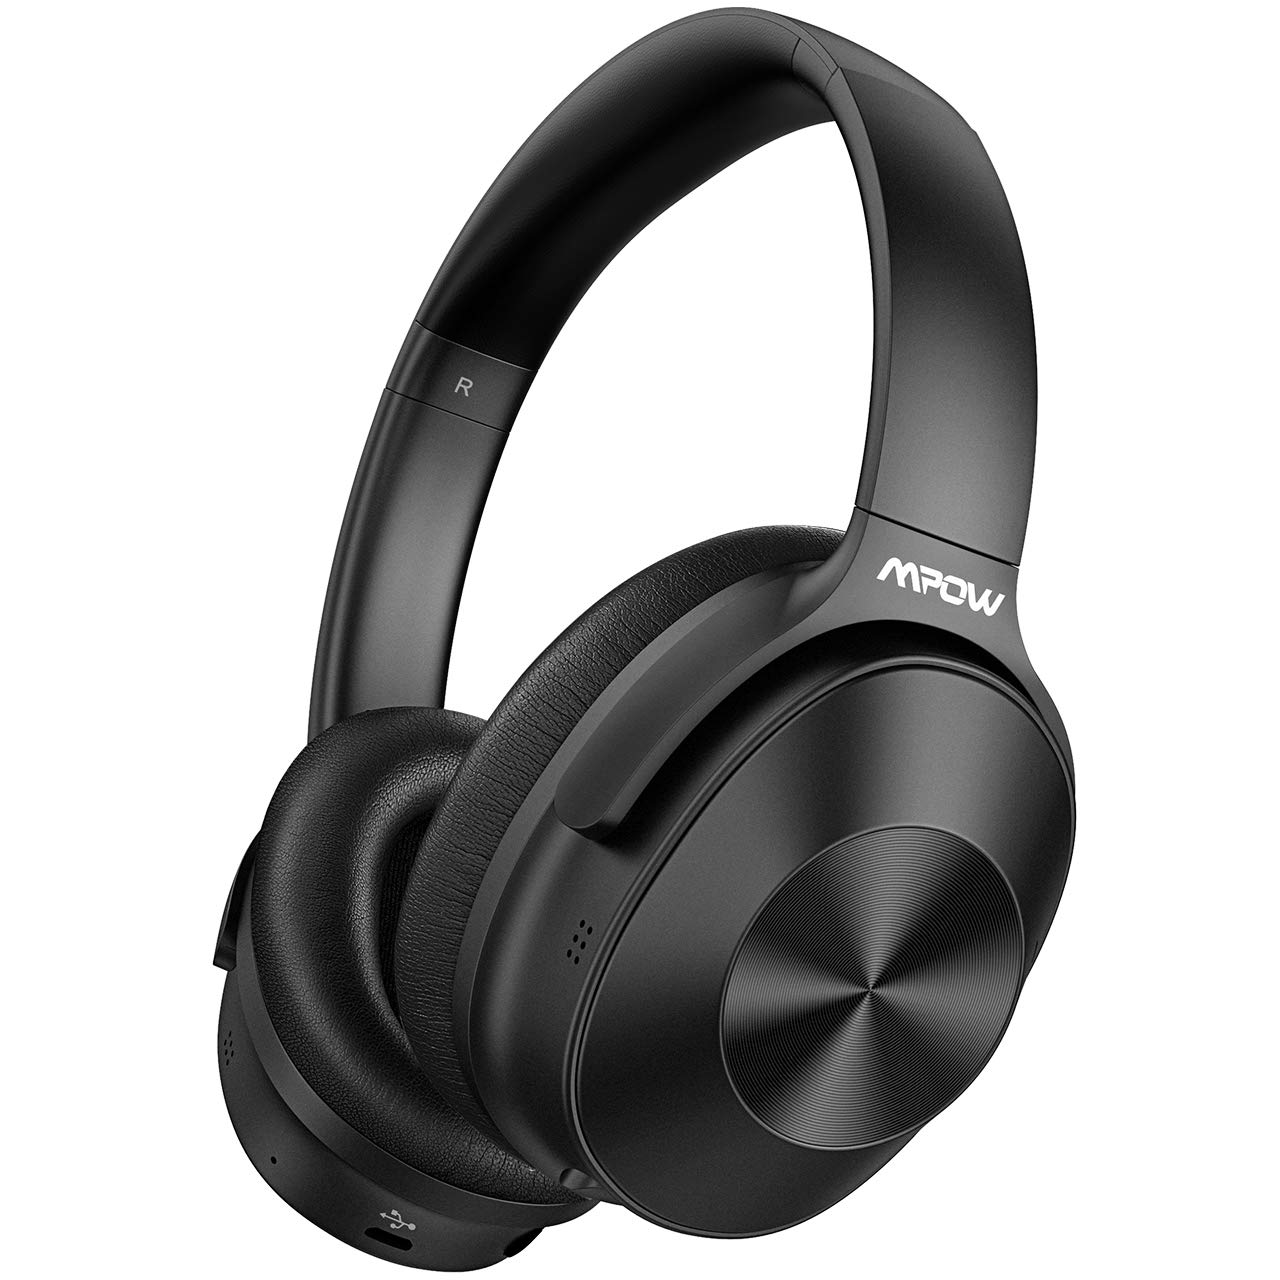 Mpow Hybrid Noise Cancelling Headphones Upgraded Bluetooth Headphones, Over-Ear Wireless Headphones with Stereo Sound, 30H Playtime for Travel Work Cellphone